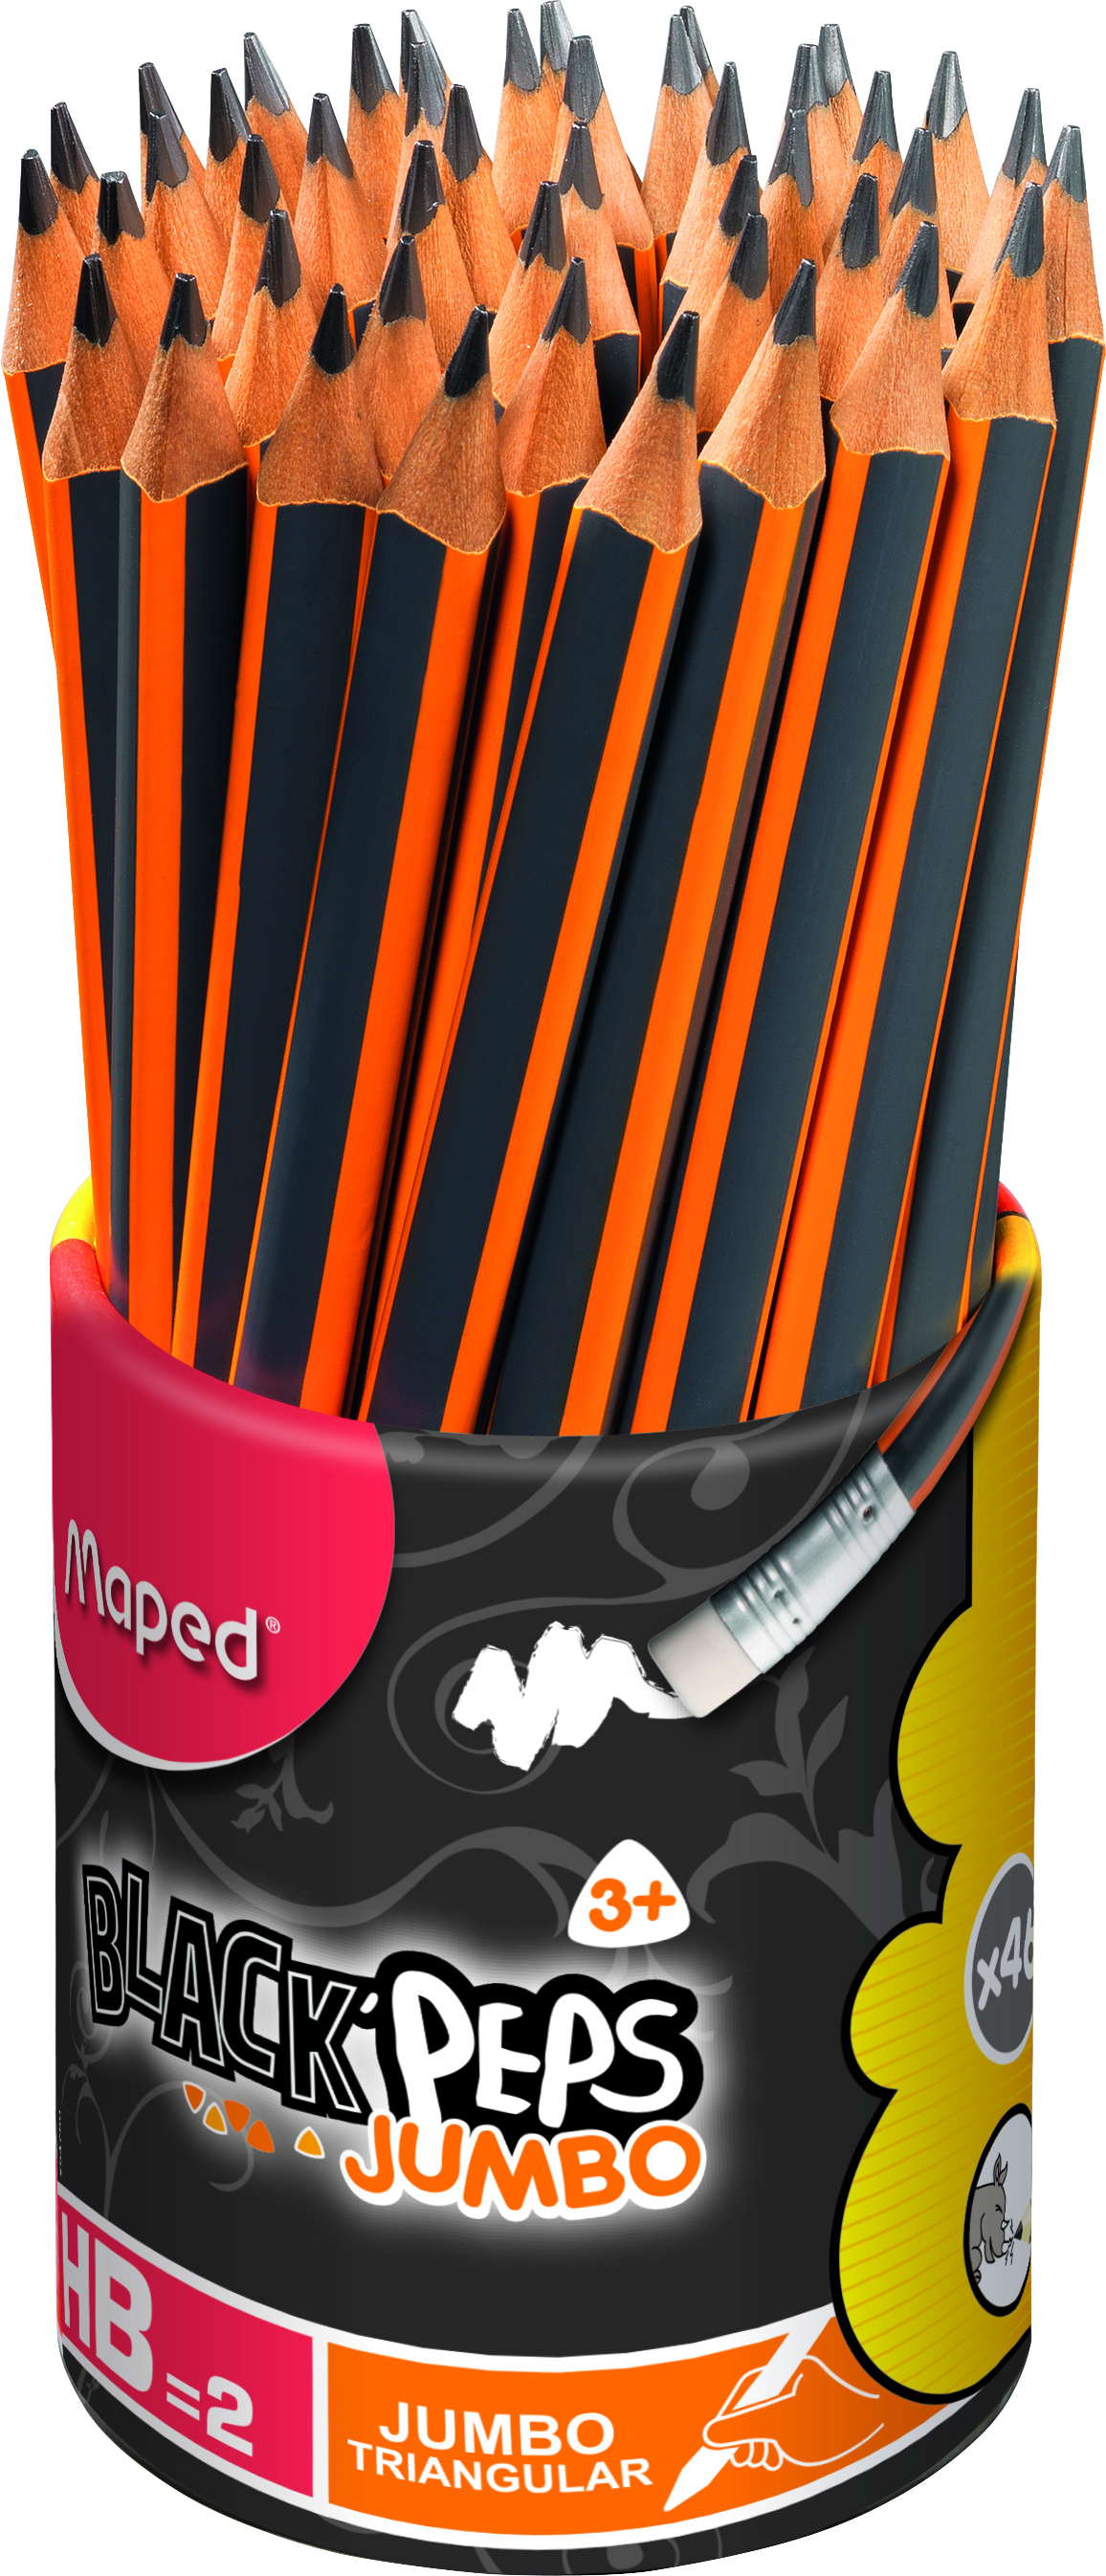 Maped Jumbo Pre-Sharpened Triangular #2 Pencils x46 by Maped Helix USA